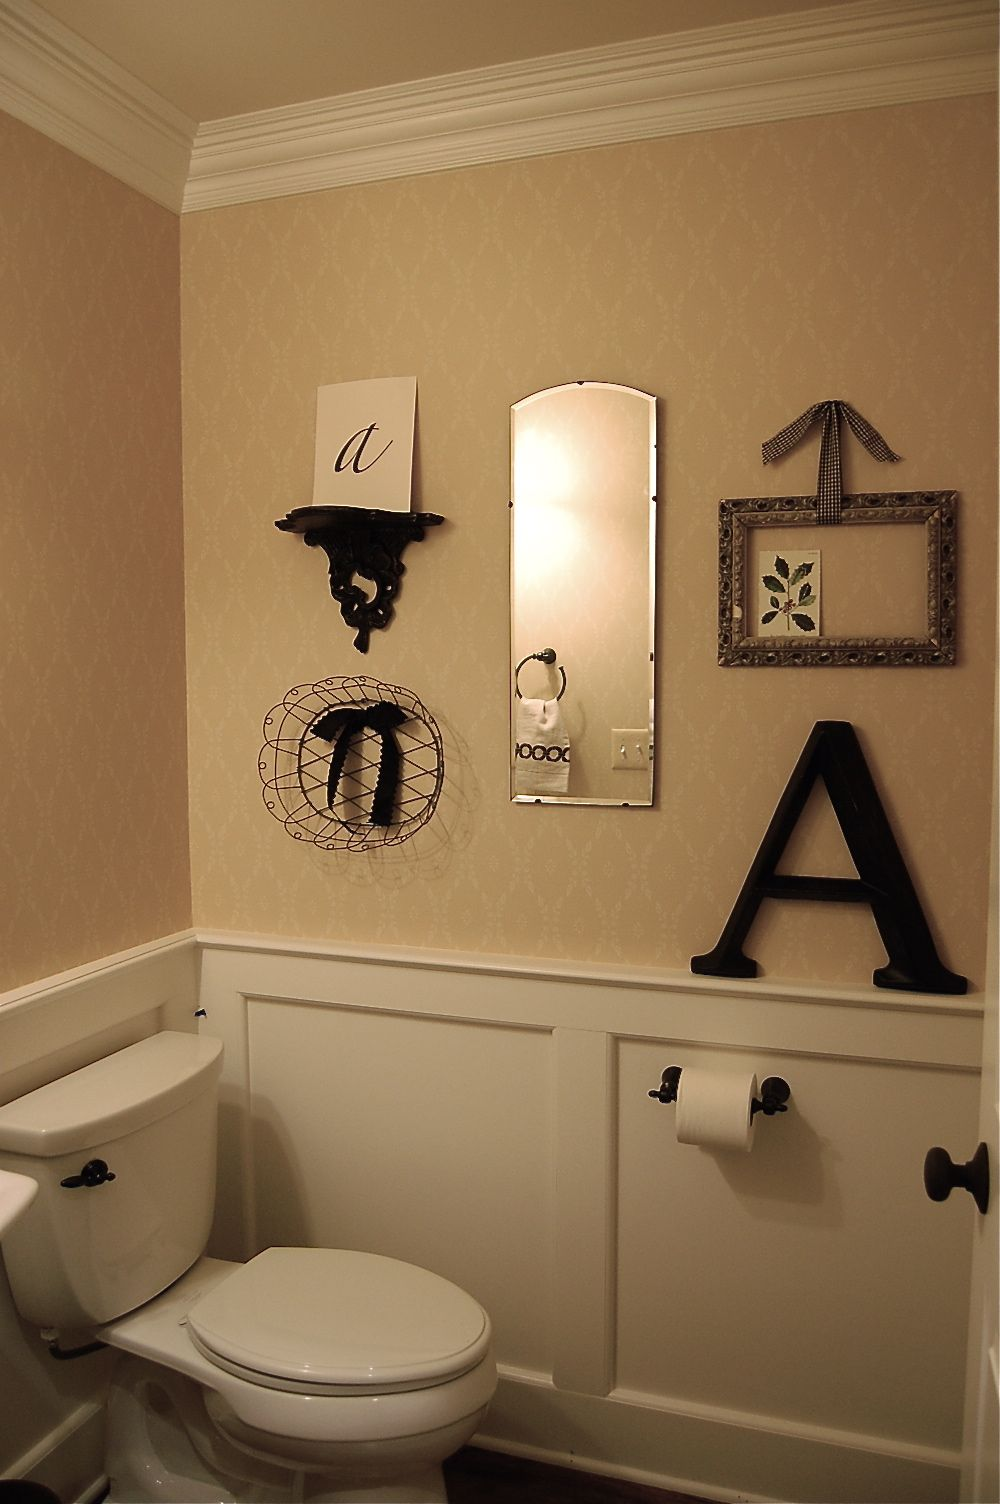 Half Bathroom Ideas Want A Half Bathroom That Will Impress Your Guests When Entertaining Update Your Bathroom Decor In No Time With These Affordable